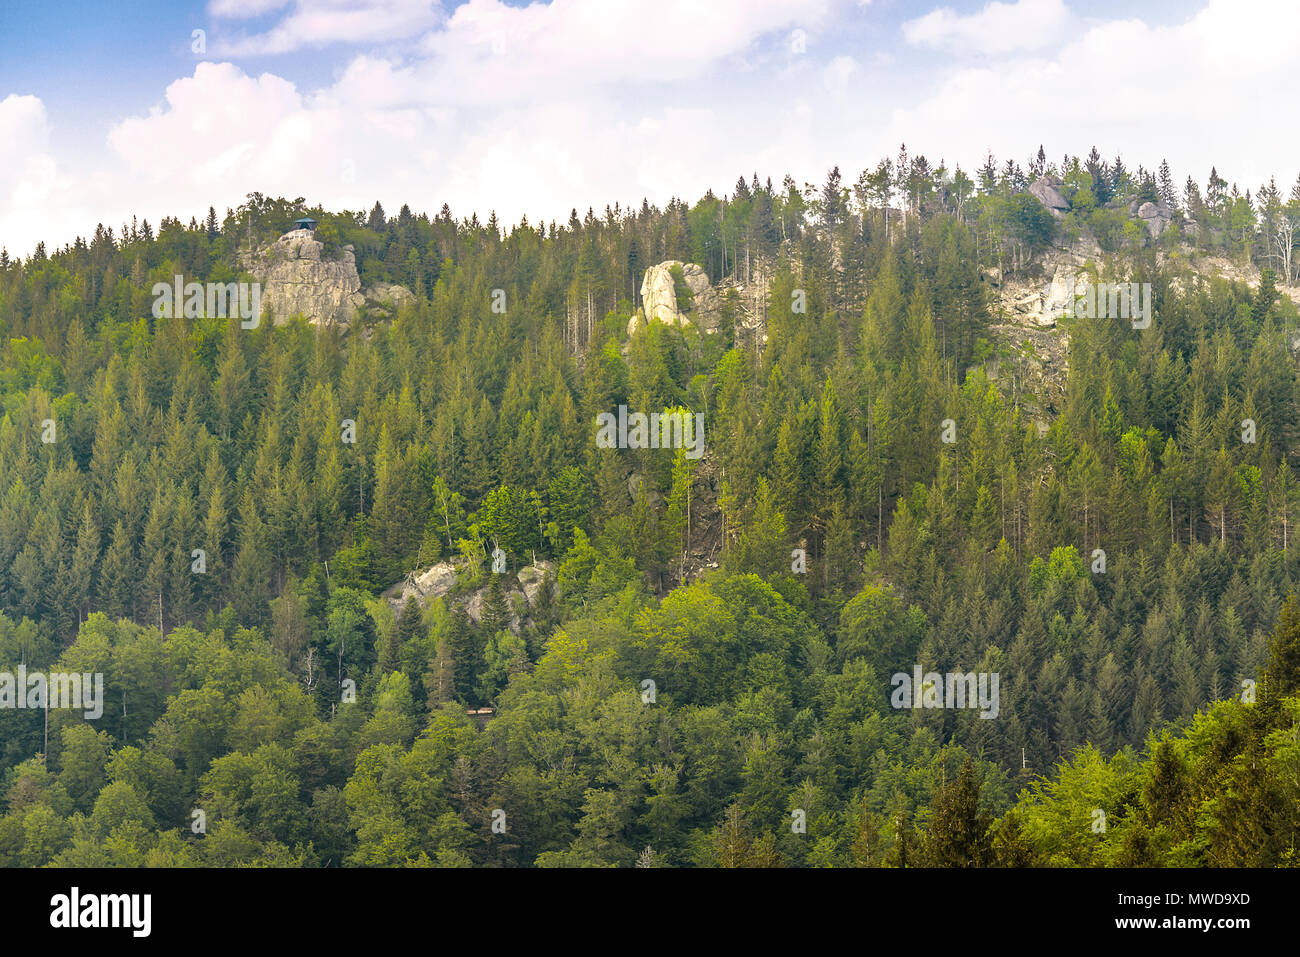 viewpoint Wiedenfelsen at the border of the Black Forest, Germany, steep crest with forest, rocks and exponated hut, Herthahütte - Stock Image